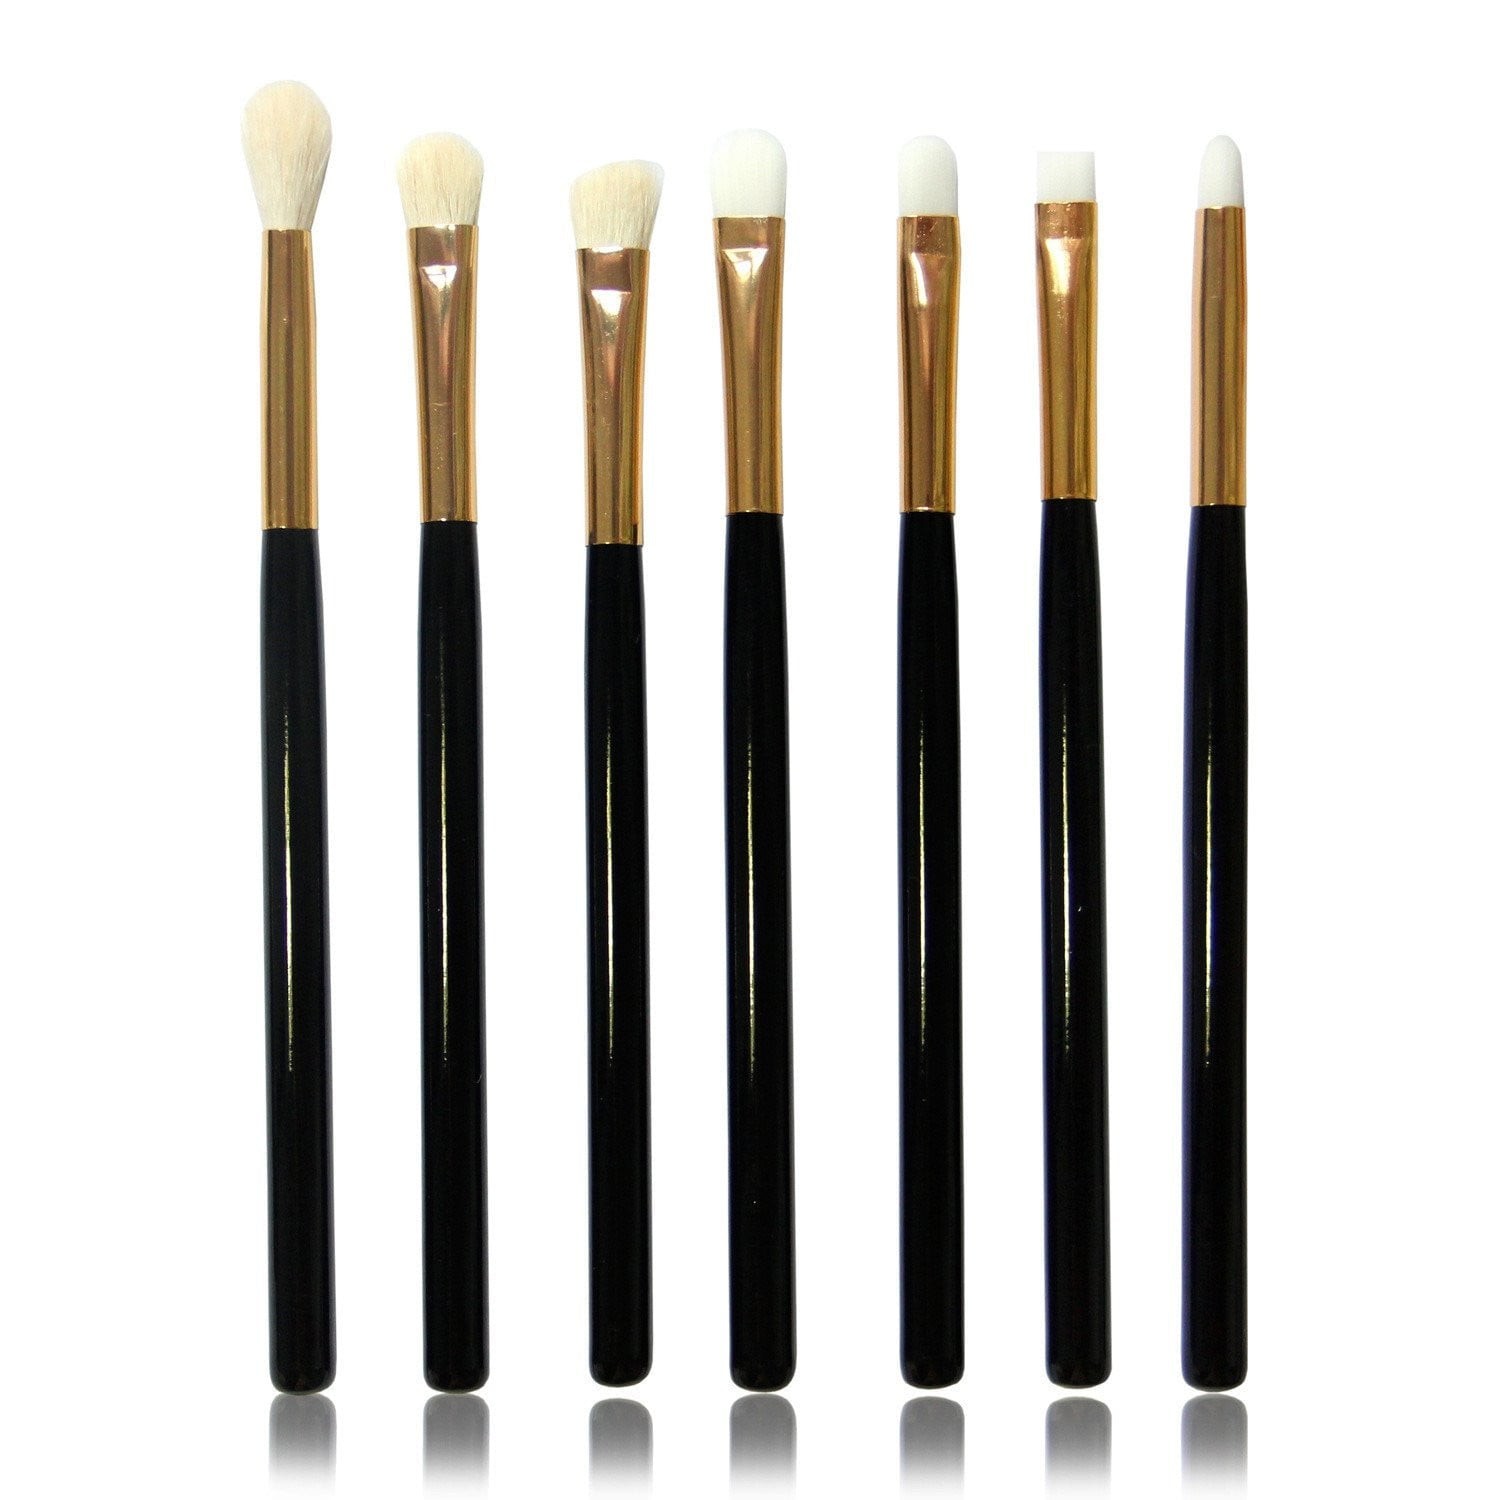 Set of 7, Eyeshadow Makeup Brushes - Dolovemk Beauty